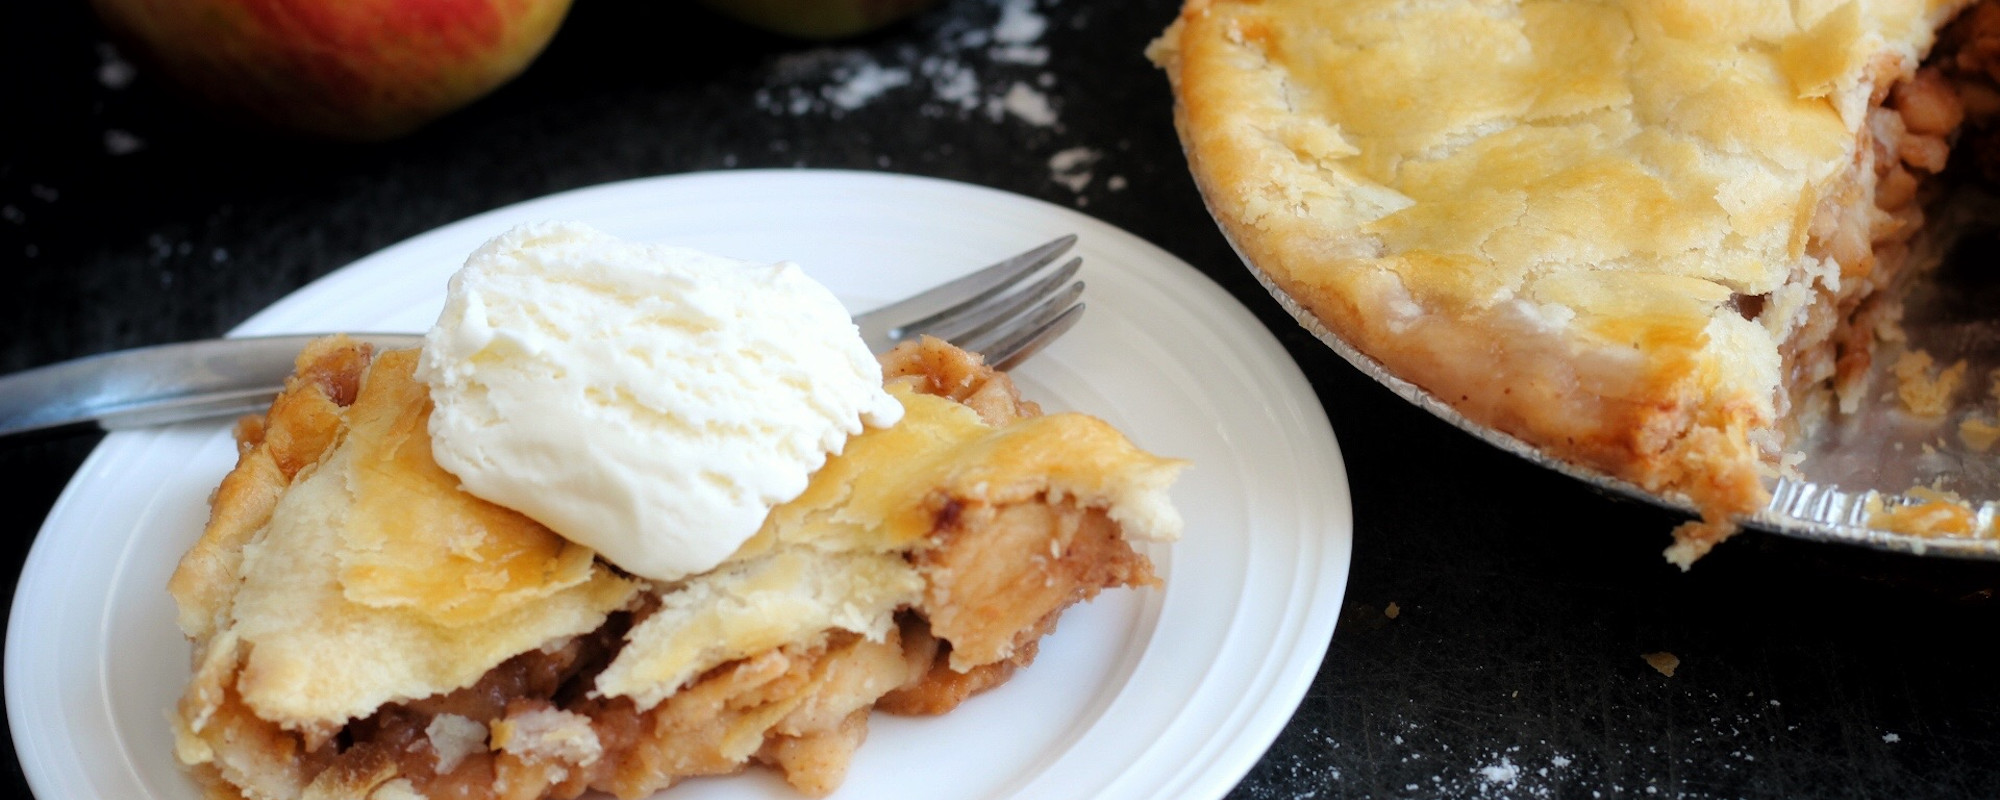 Ungers Market - Bakery Department Header - Apple Pie